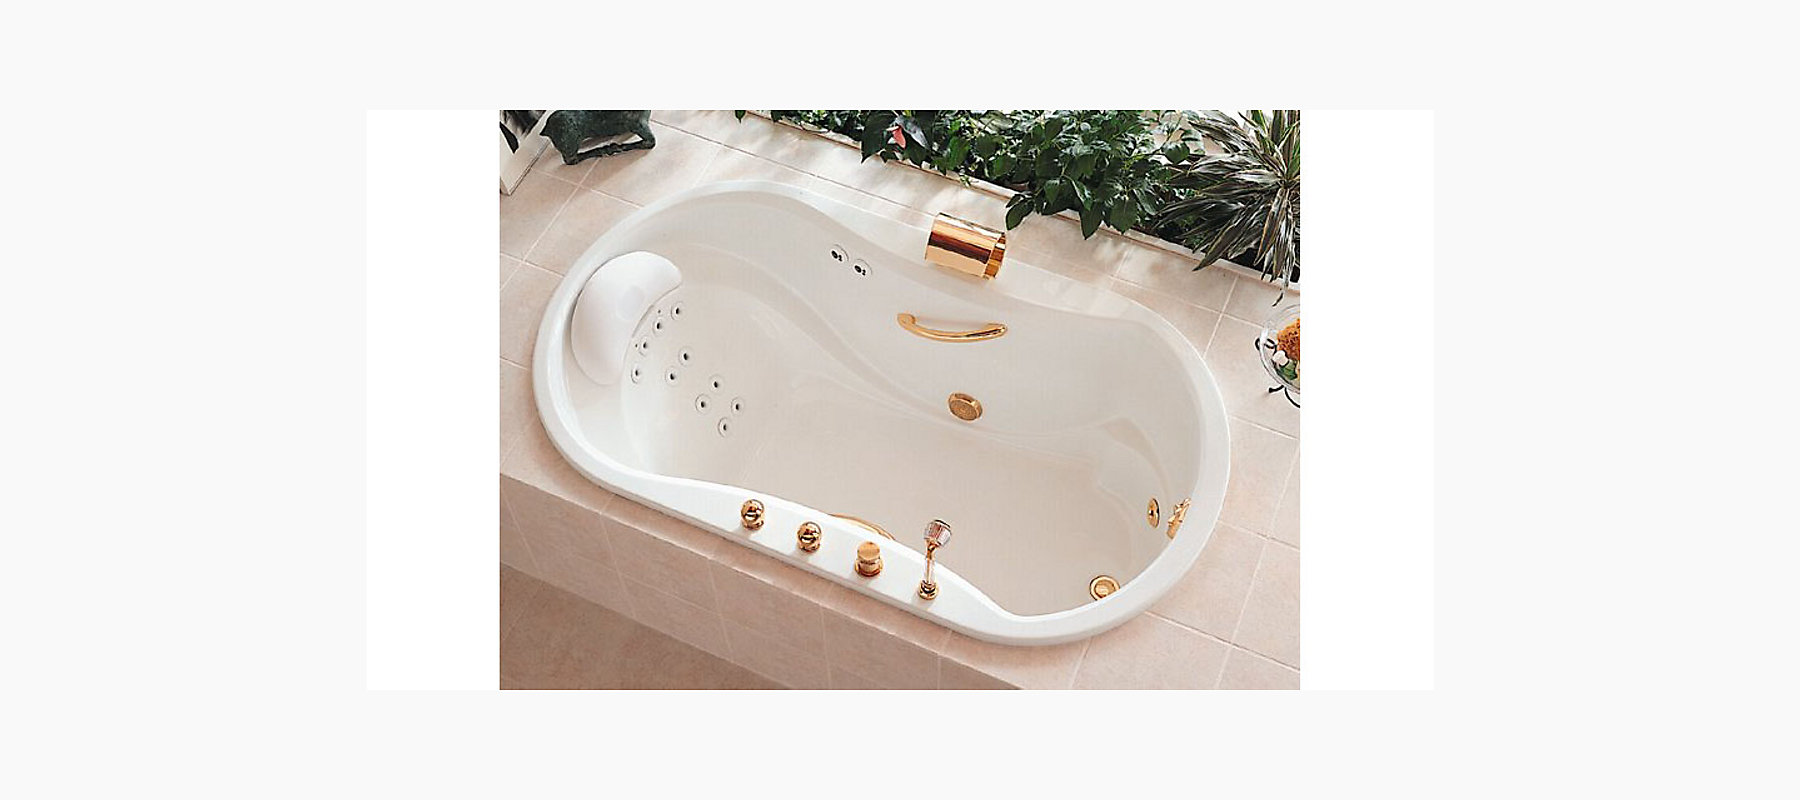 ideas full of bath kohler picture sofa combinations jacuzzi shower pictures and tub size perfect combinationskohler whirlpool